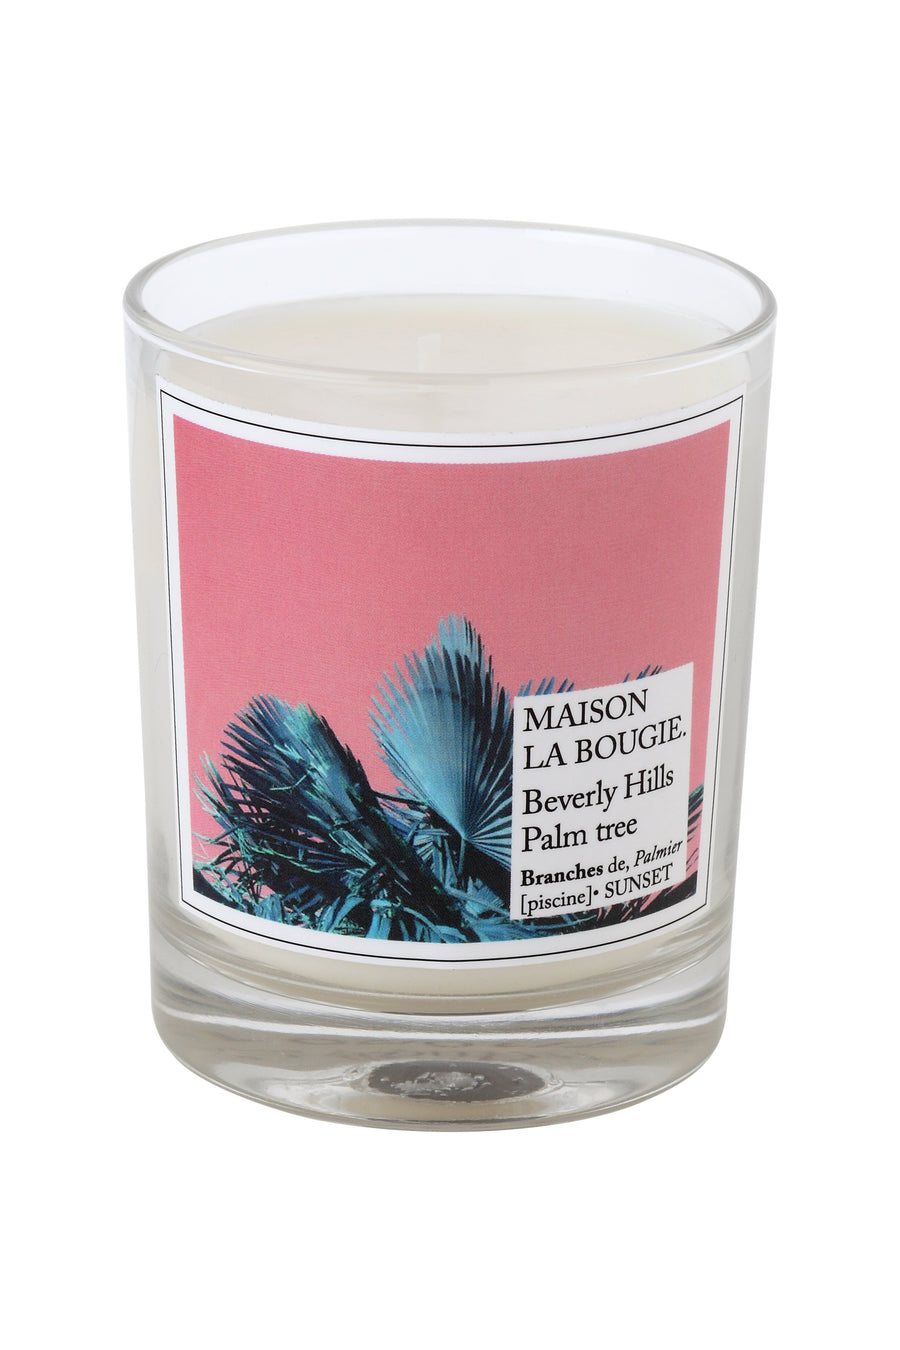 MAISON LA BOUGIE Beverly Hills Palm Tree 190g Candle | Candles and Fragrances | Deko International